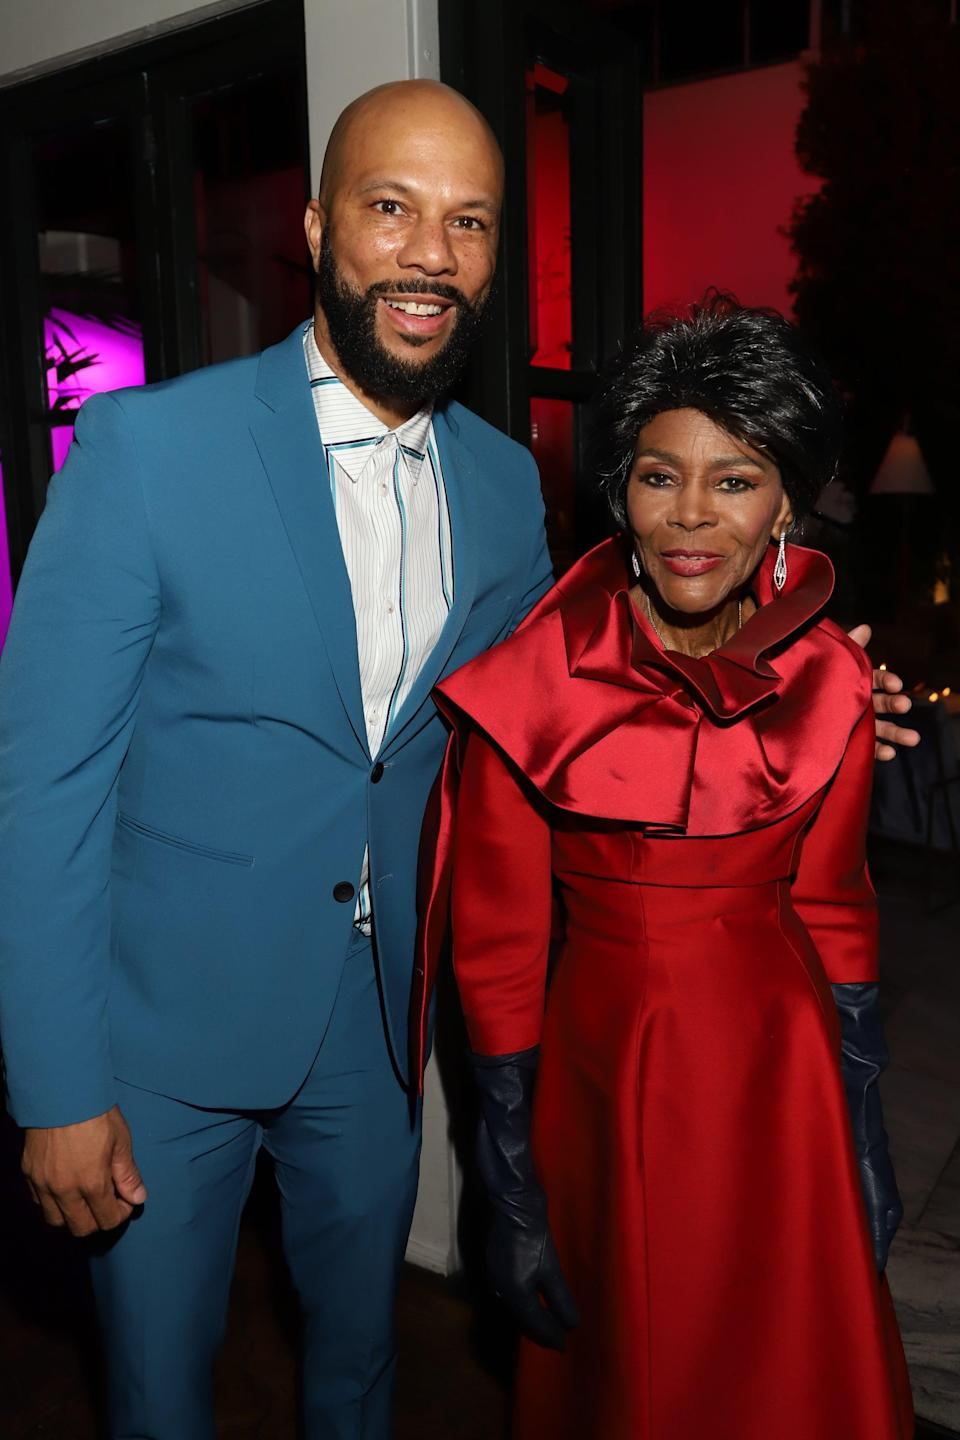 """<p>""""I'm so sad to hear the news that trailblazing artist and cultural icon Cicely Tyson has passed away today. While <a href=""""https://www.instagram.com/p/CKm_xoXpPjY/"""" class=""""link rapid-noclick-resp"""" rel=""""nofollow noopener"""" target=""""_blank"""" data-ylk=""""slk:she may be gone"""">she may be gone</a>, her work and life will continue to inspire millions for years to come. God Bless. RP via @WeLeadWithLove.""""</p>"""